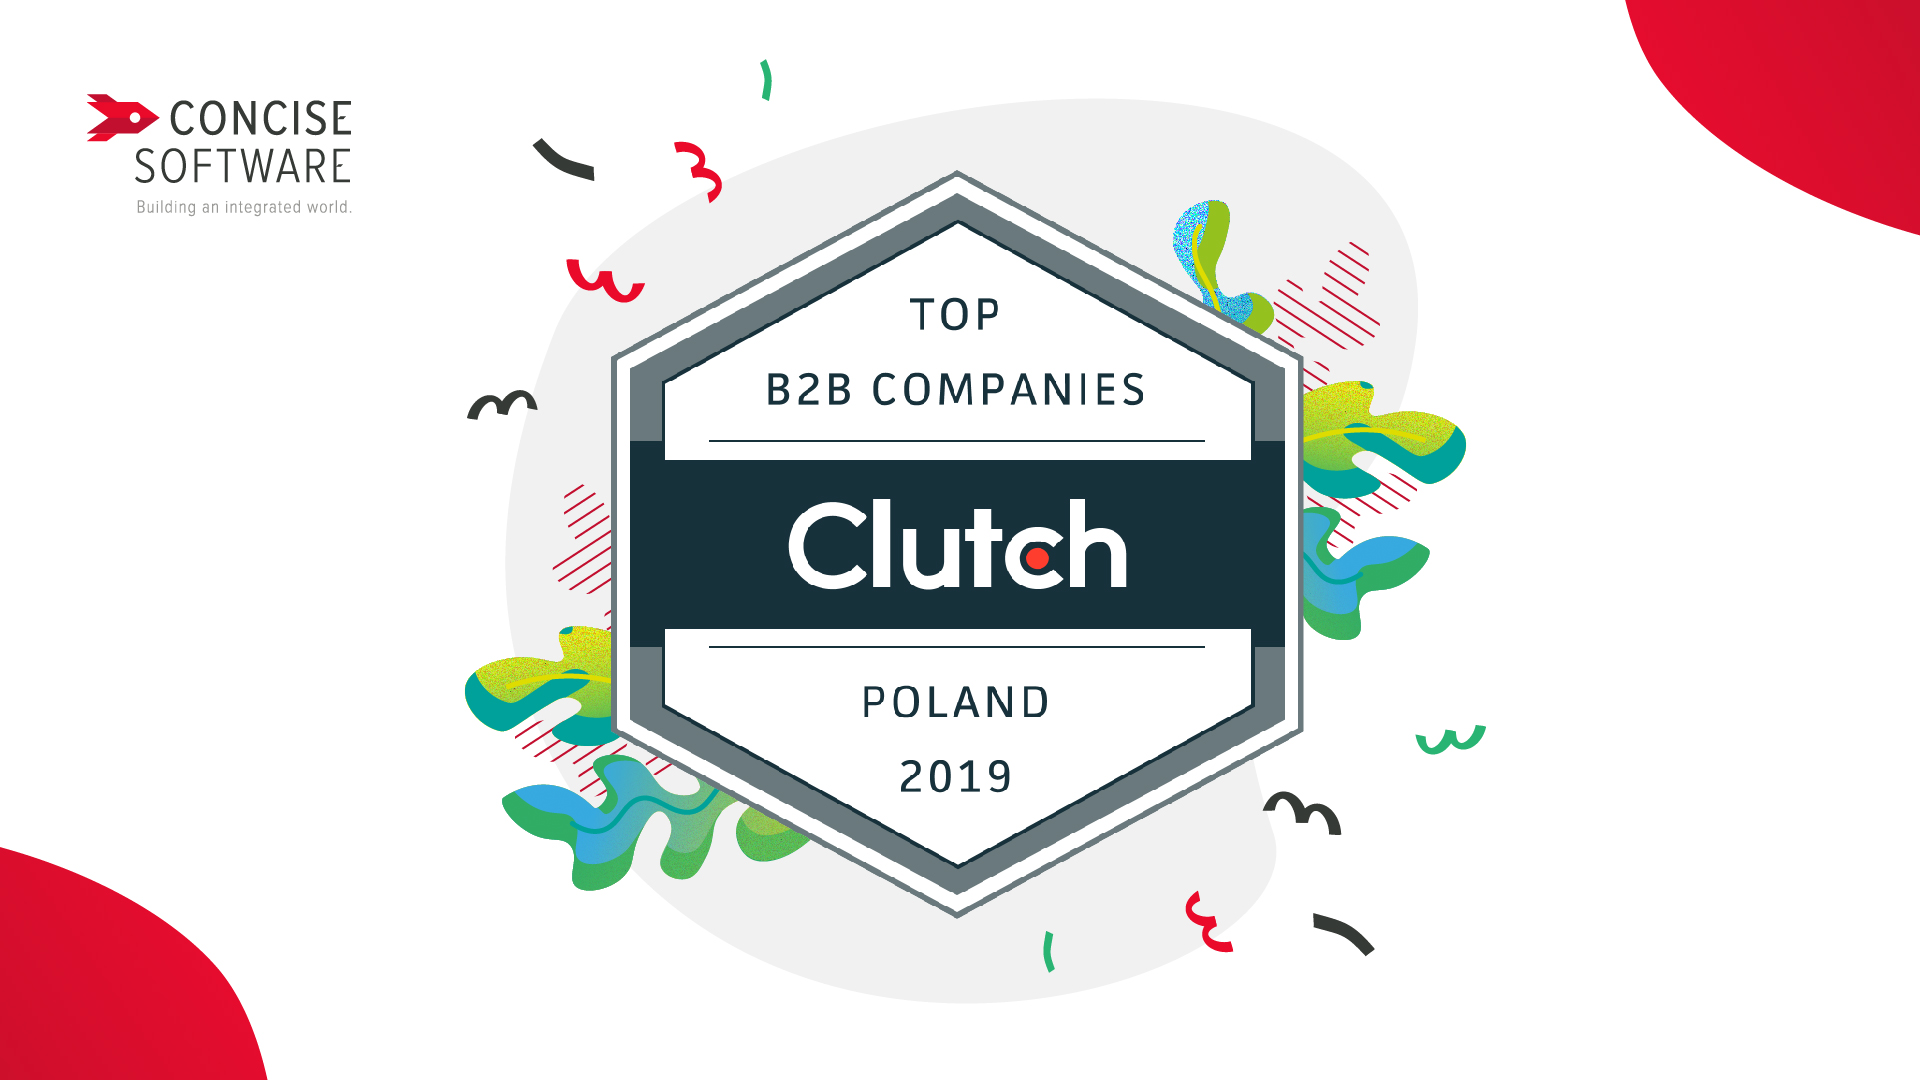 Concise Software awarded by Clutch as one of top B2P companies